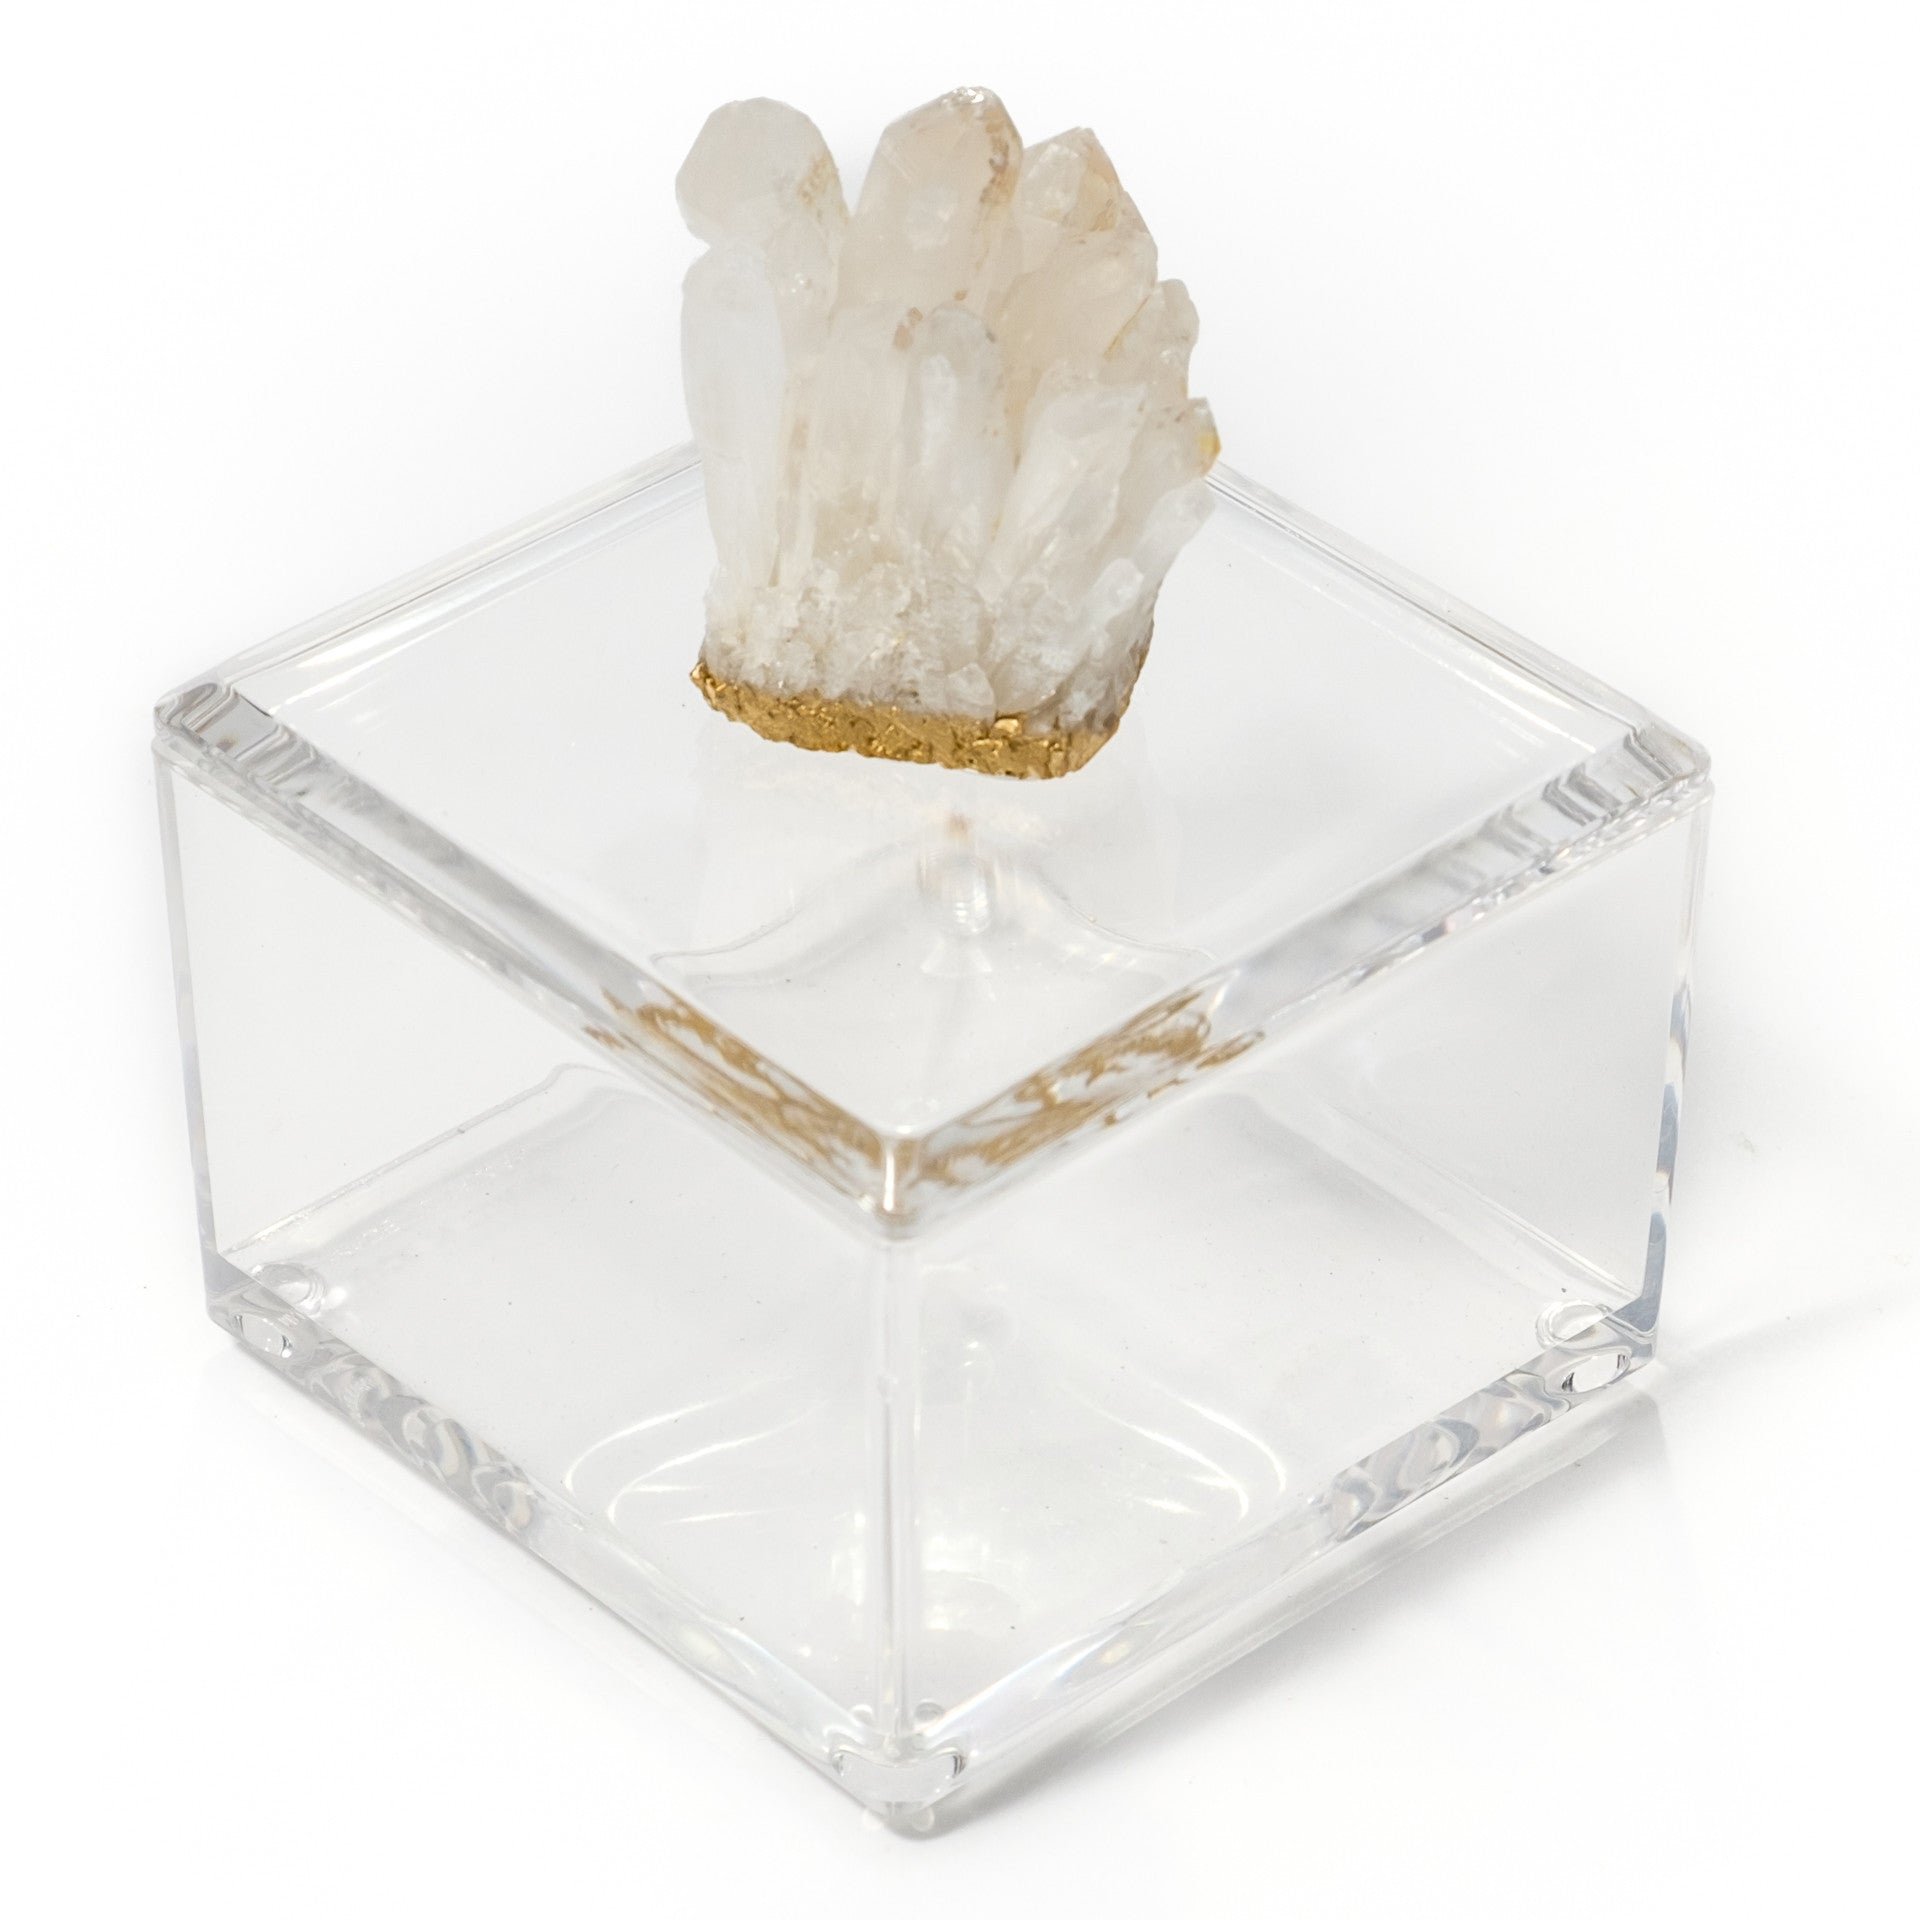 Small Acrylic Box w/ Himalayan Crystal